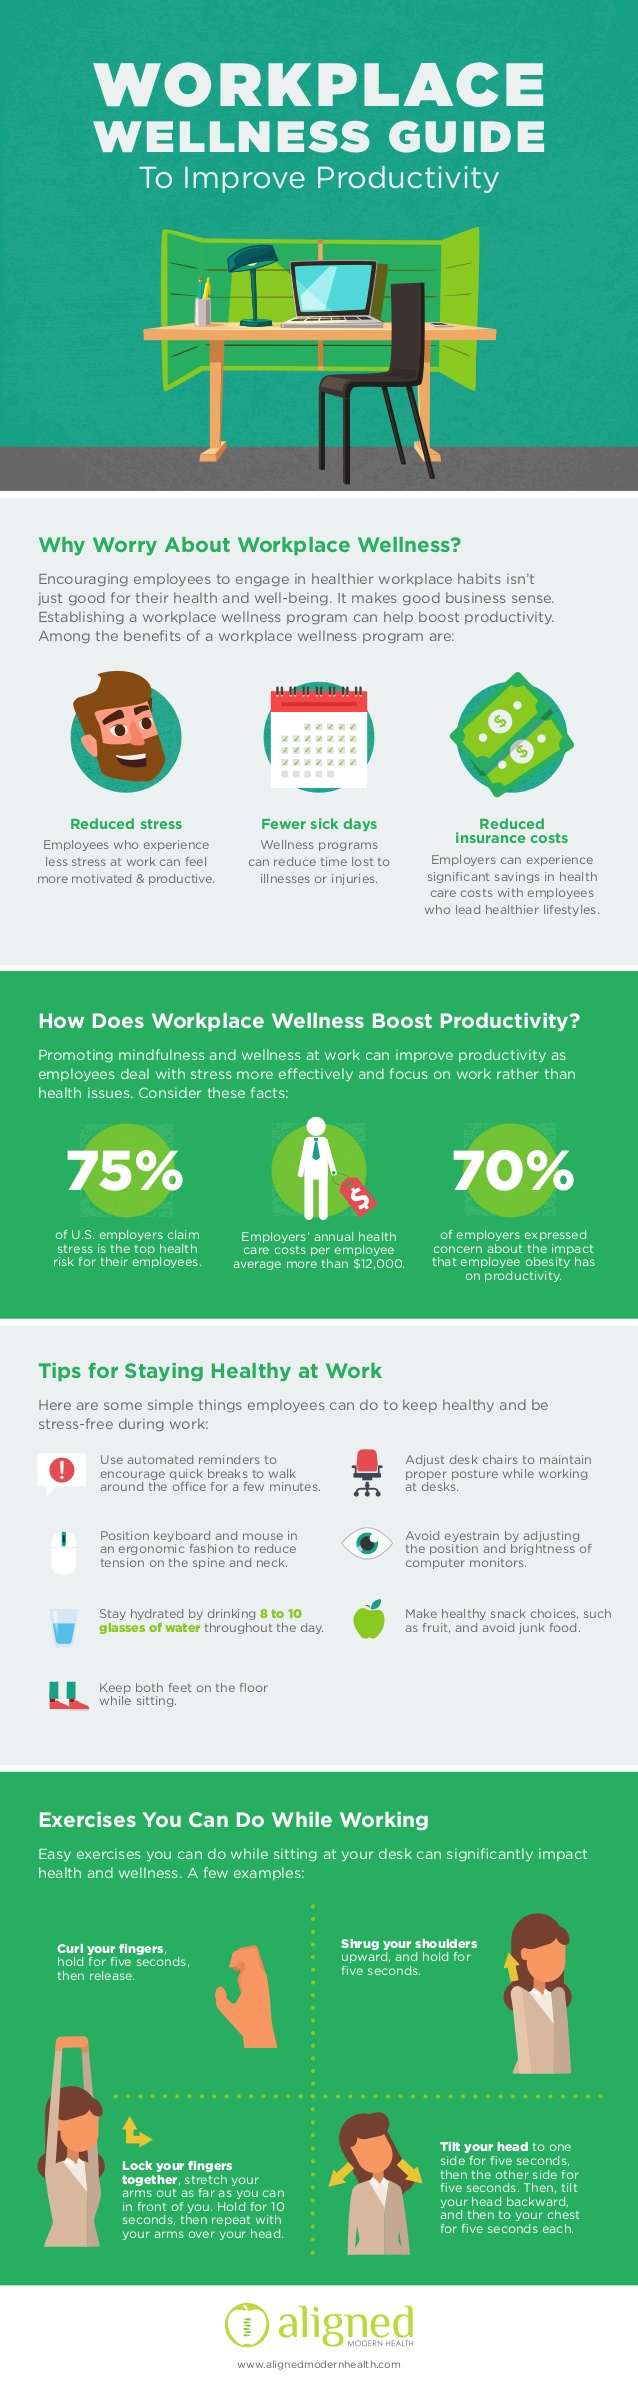 Workplace Wellness Guide To Improve Productivity [Infographic]